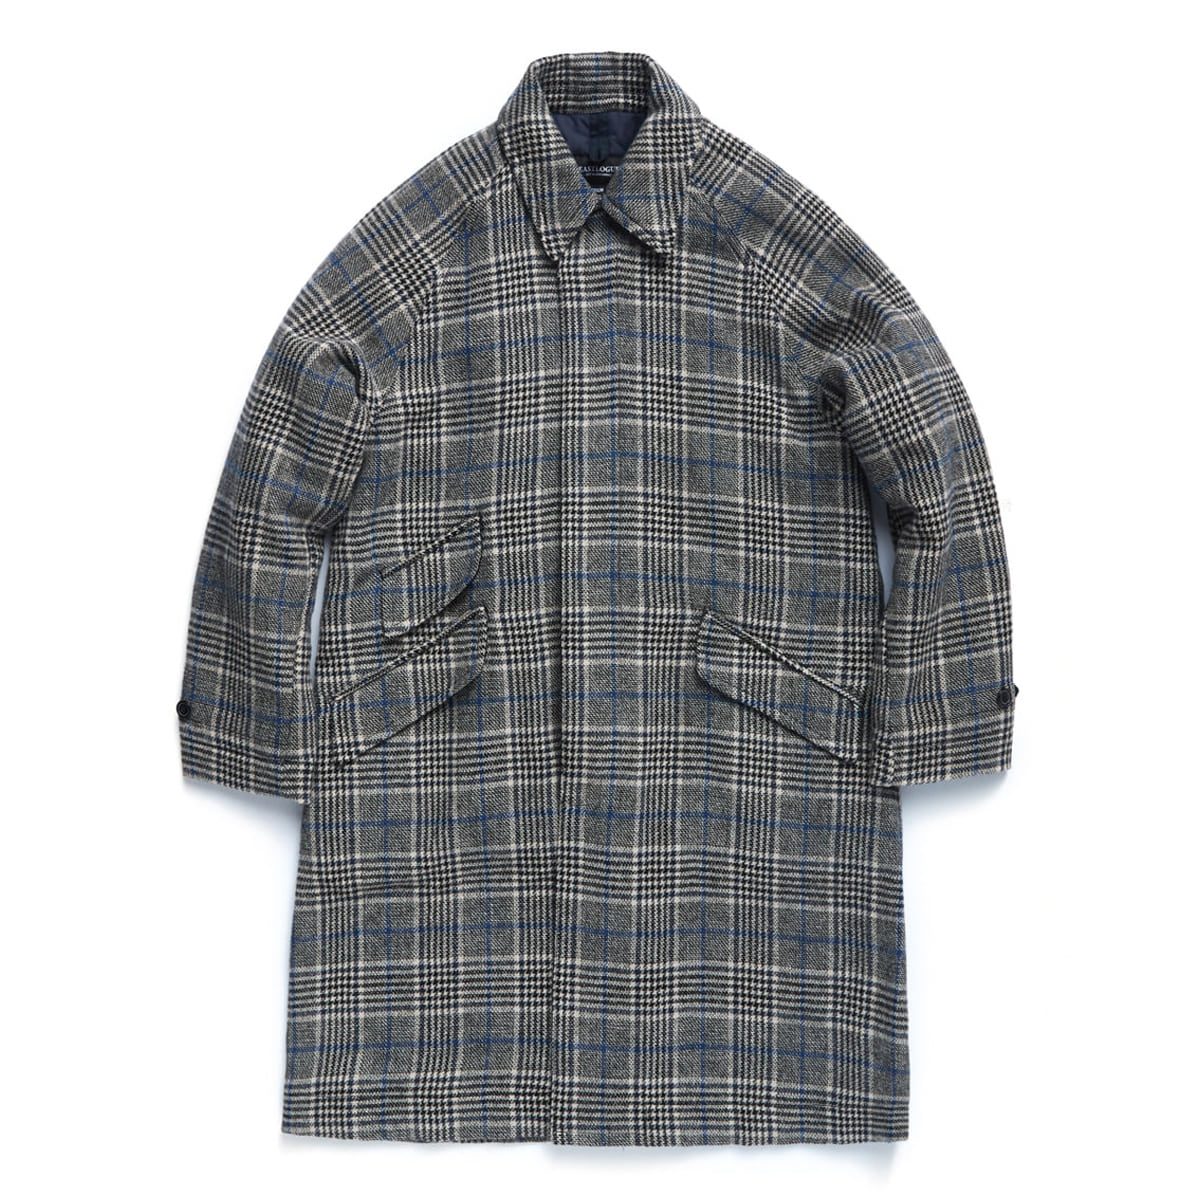 [EASTLOGUE] BALMACAAN COAT 'BEIGE/BLUE CHECK'